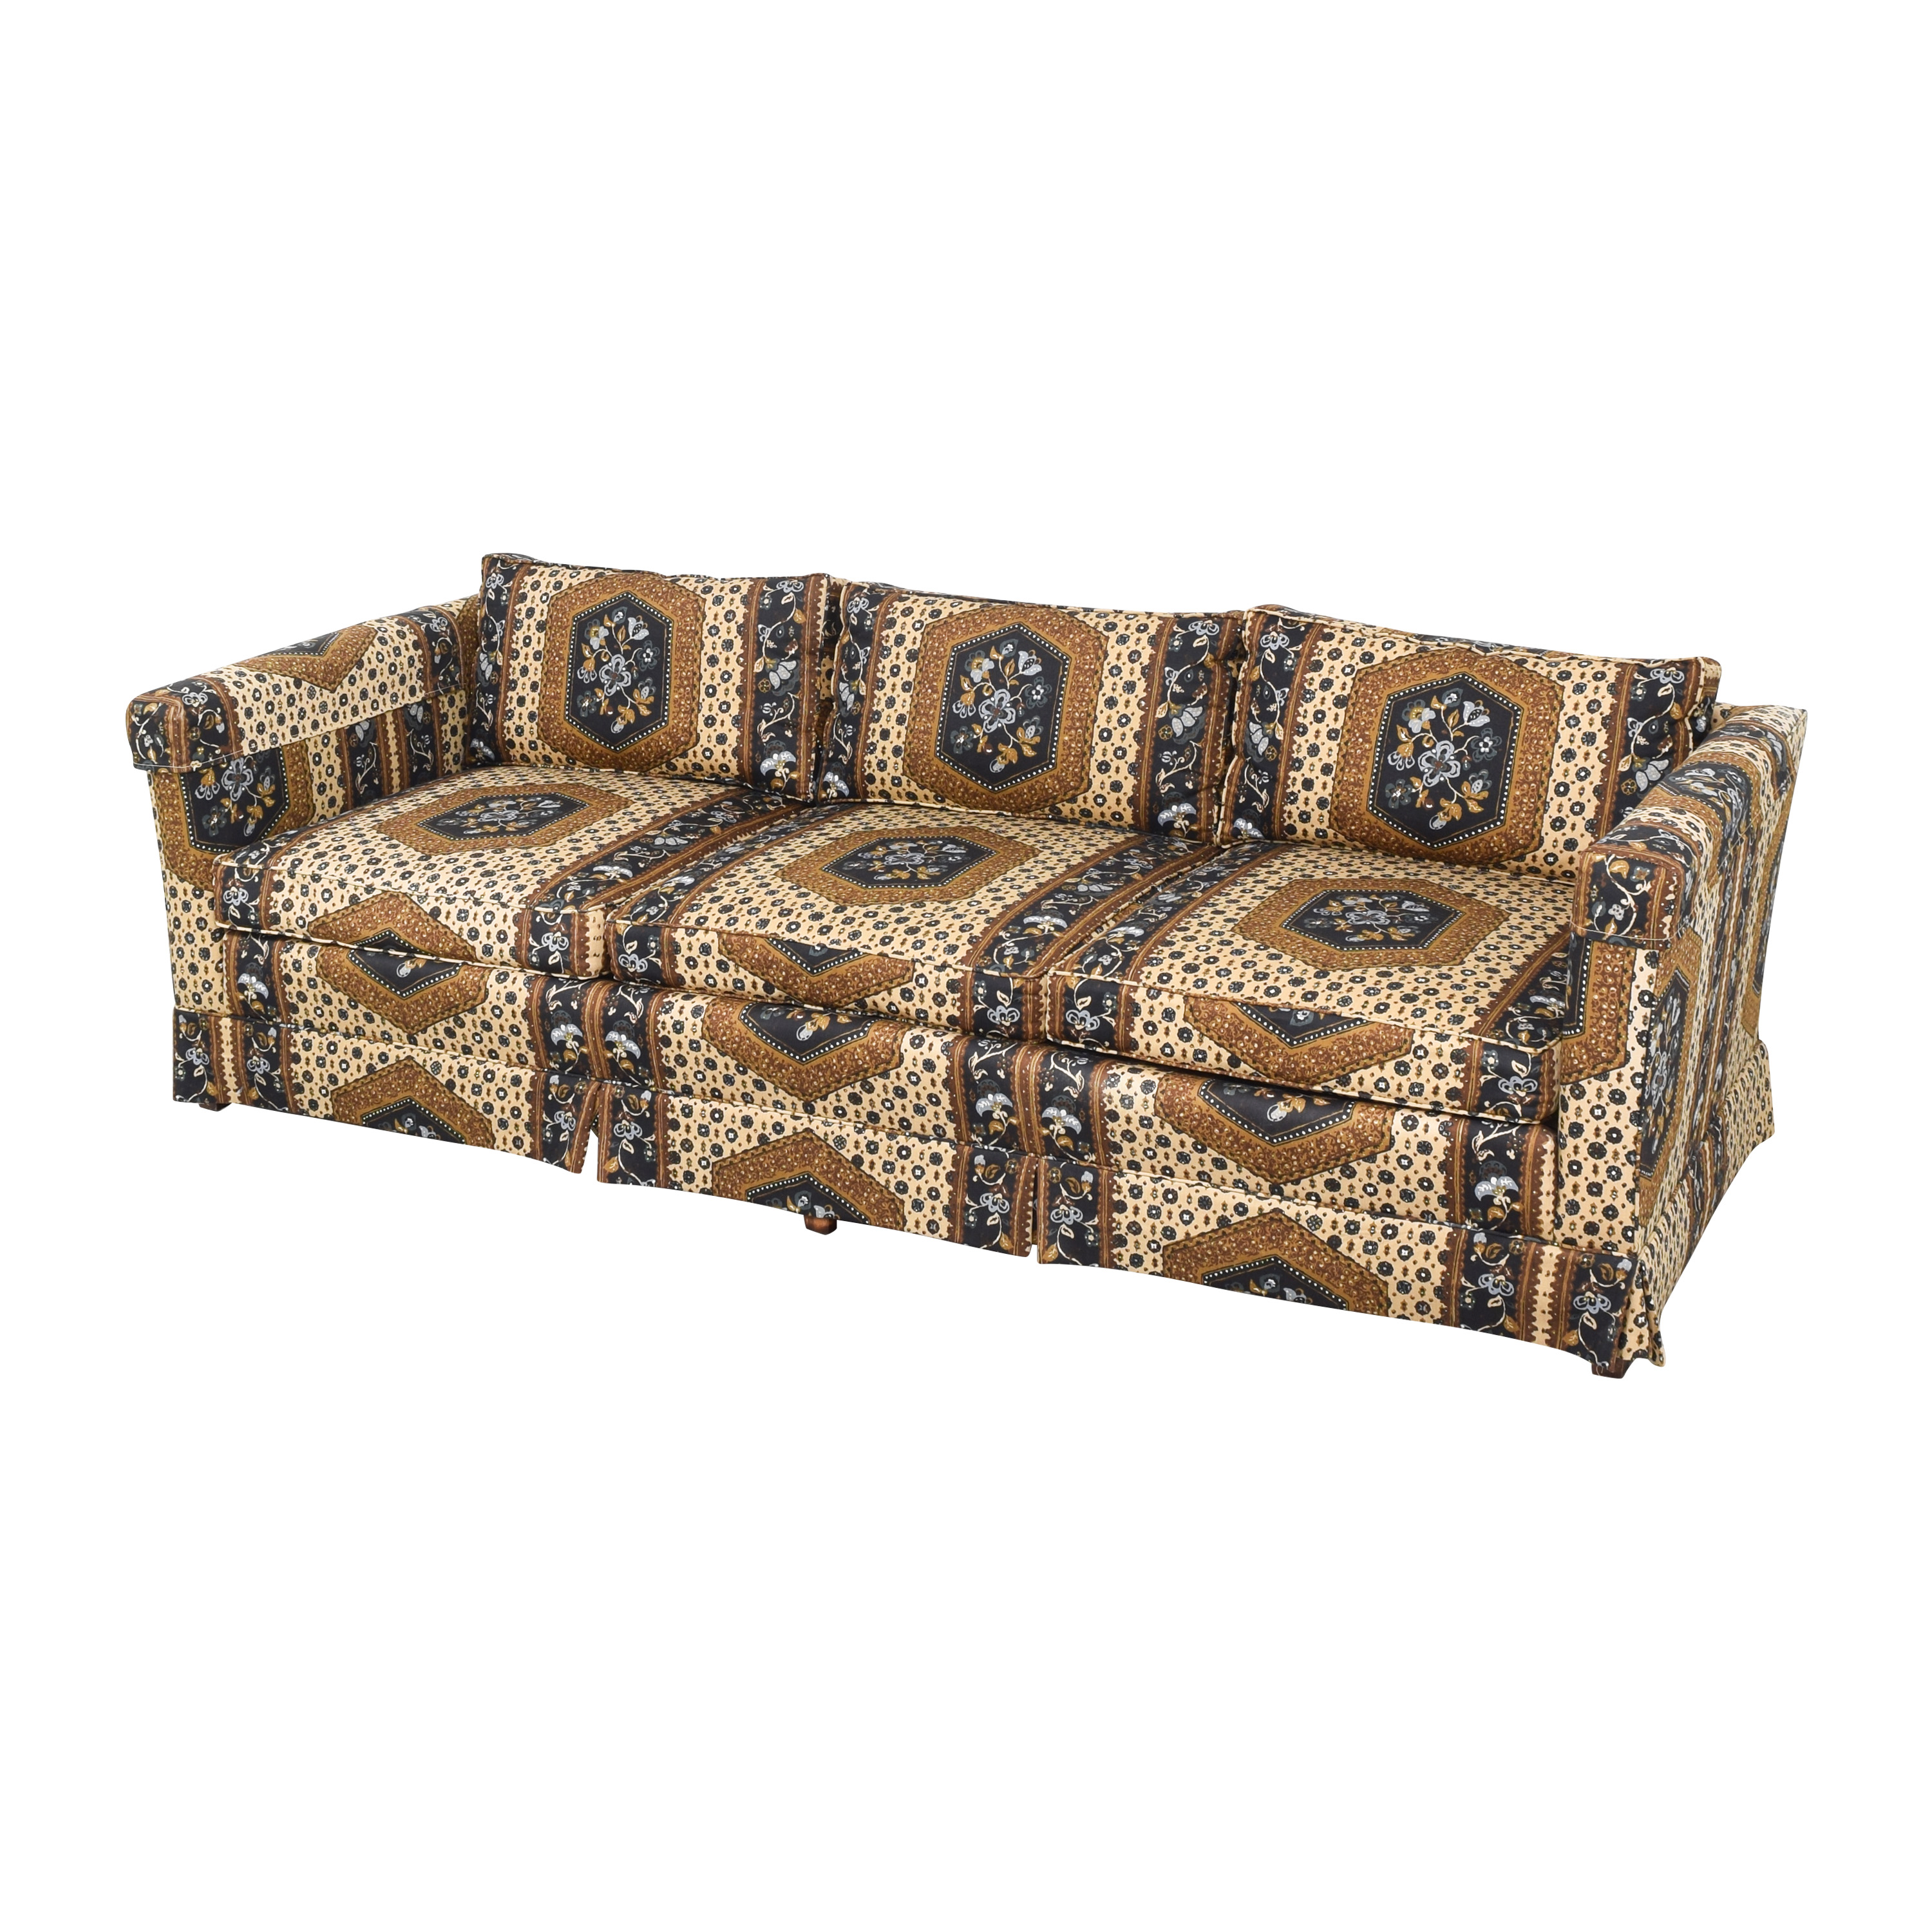 Patterned Three Seater Sofa multi